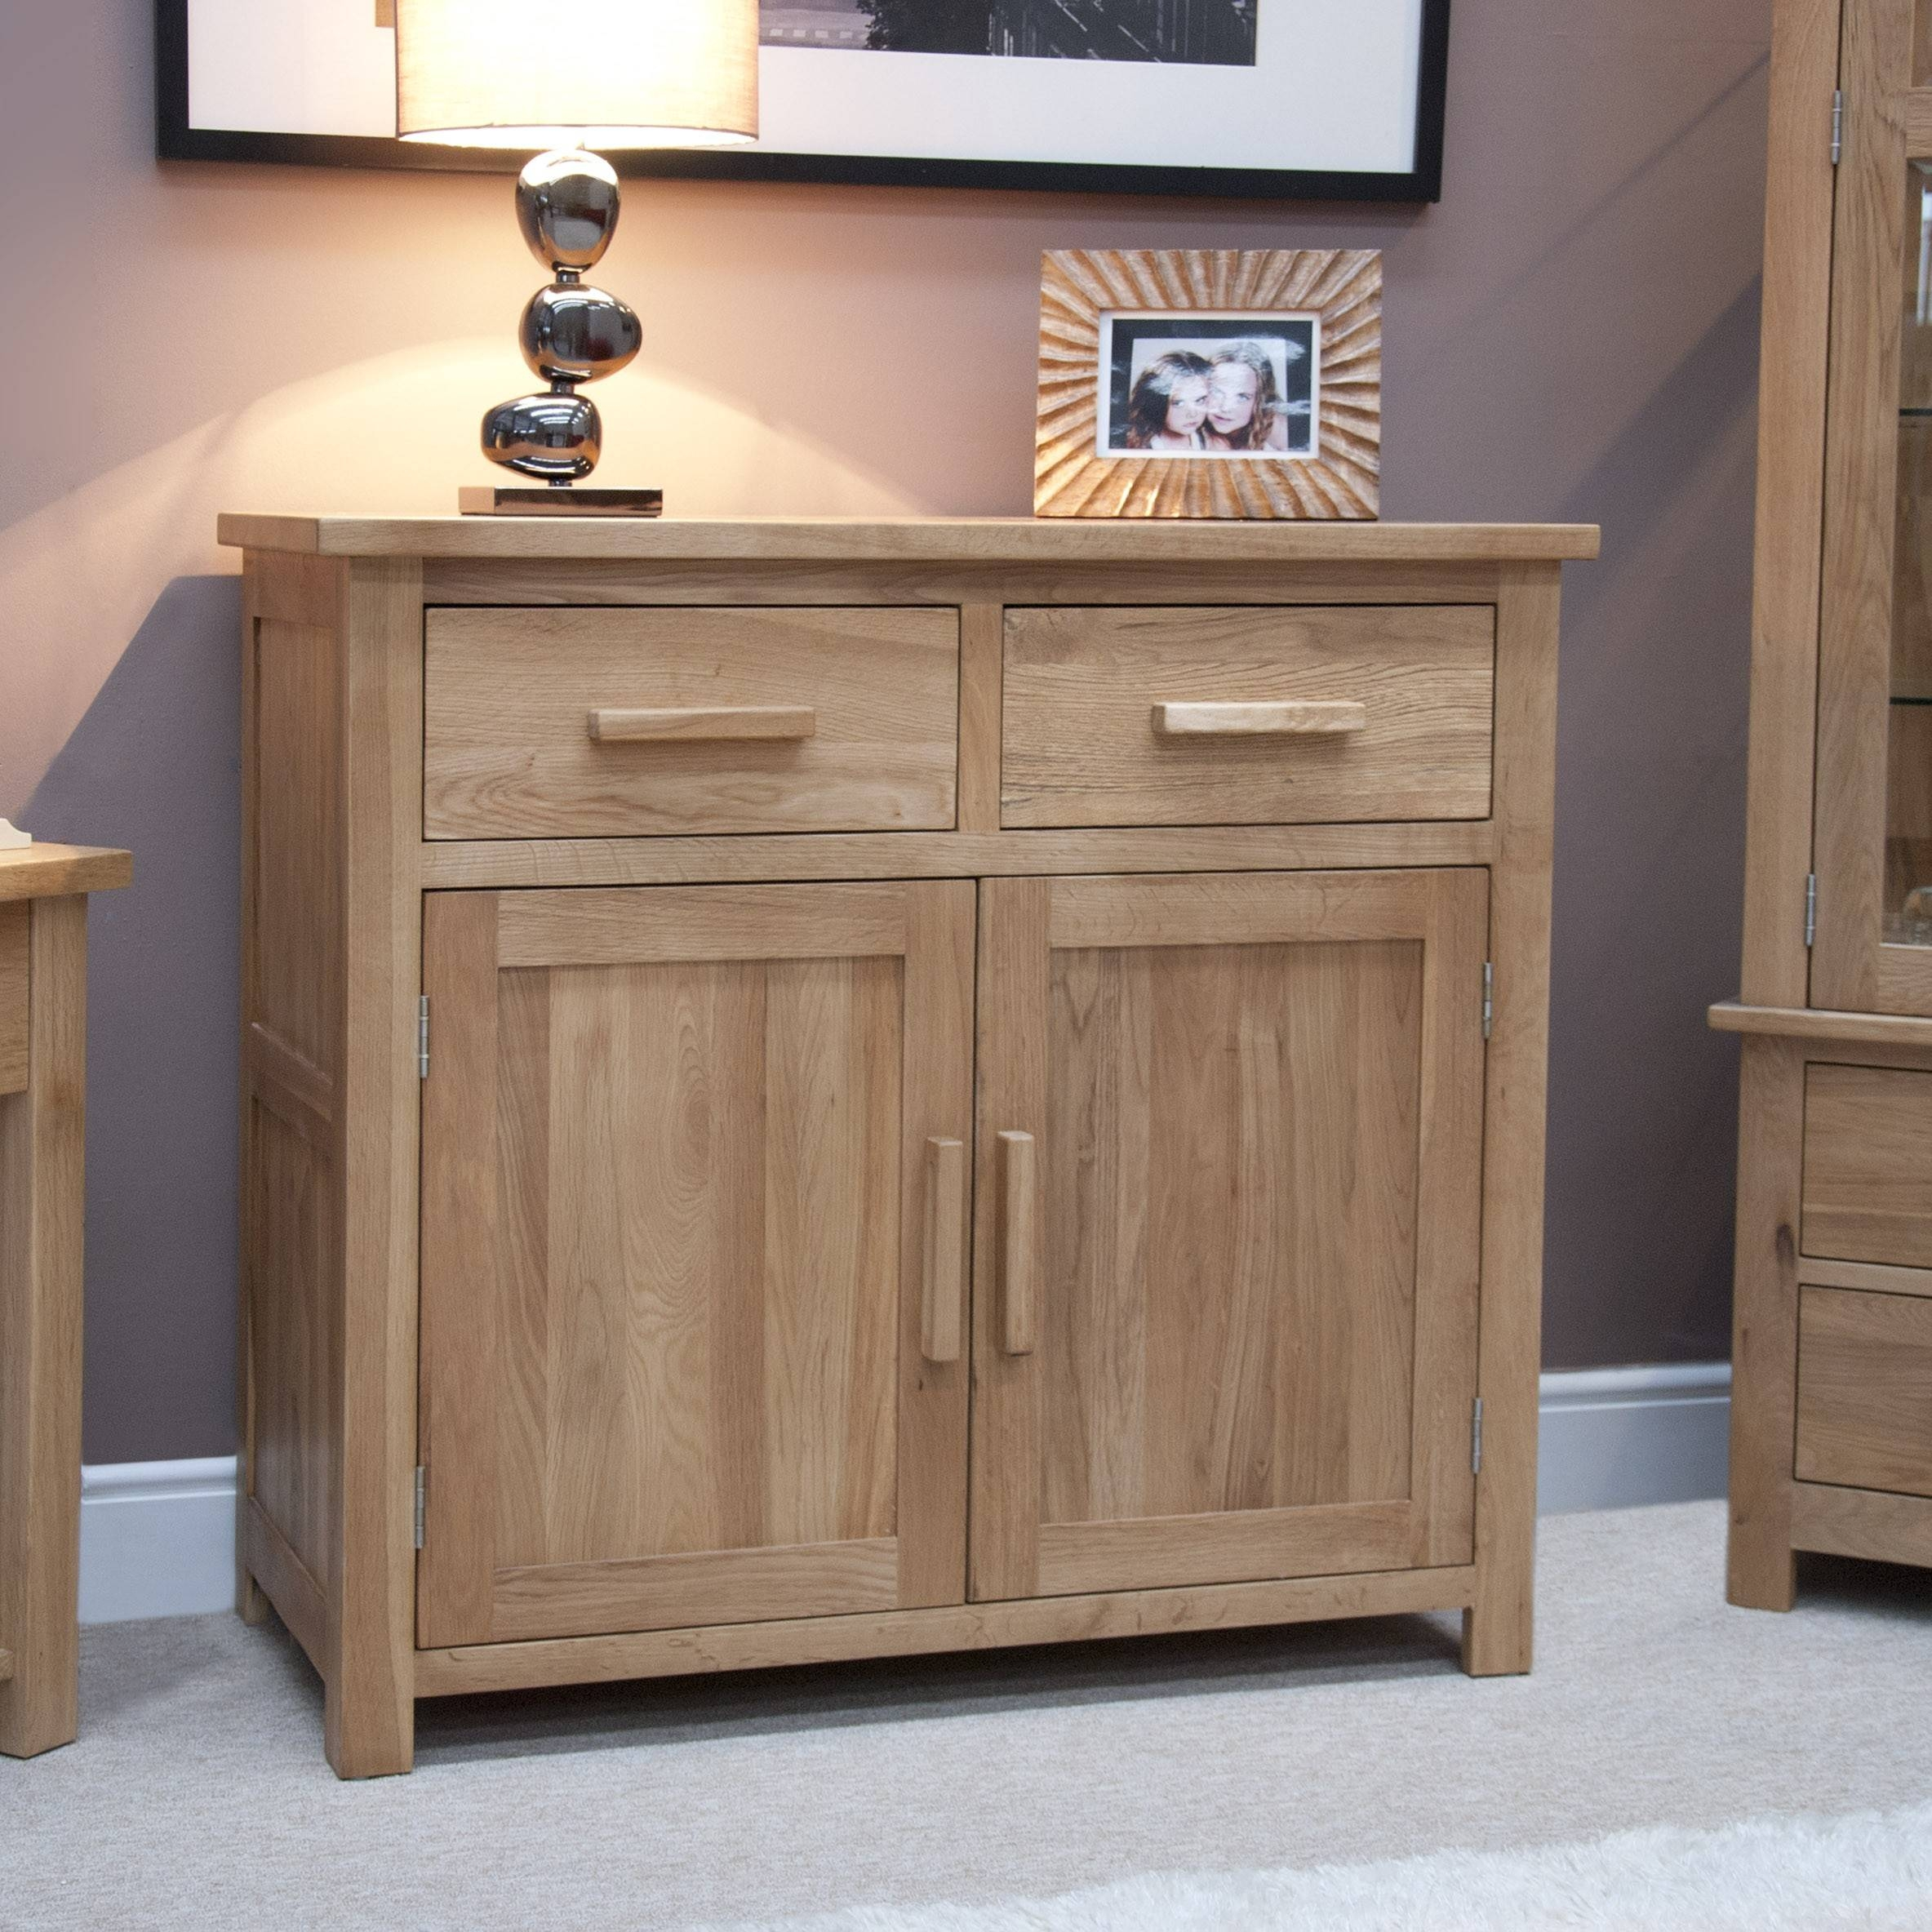 Opus Oak Furniture Small Sideboard | Furniture4Yourhome for Small Wooden Sideboards (Image 18 of 30)